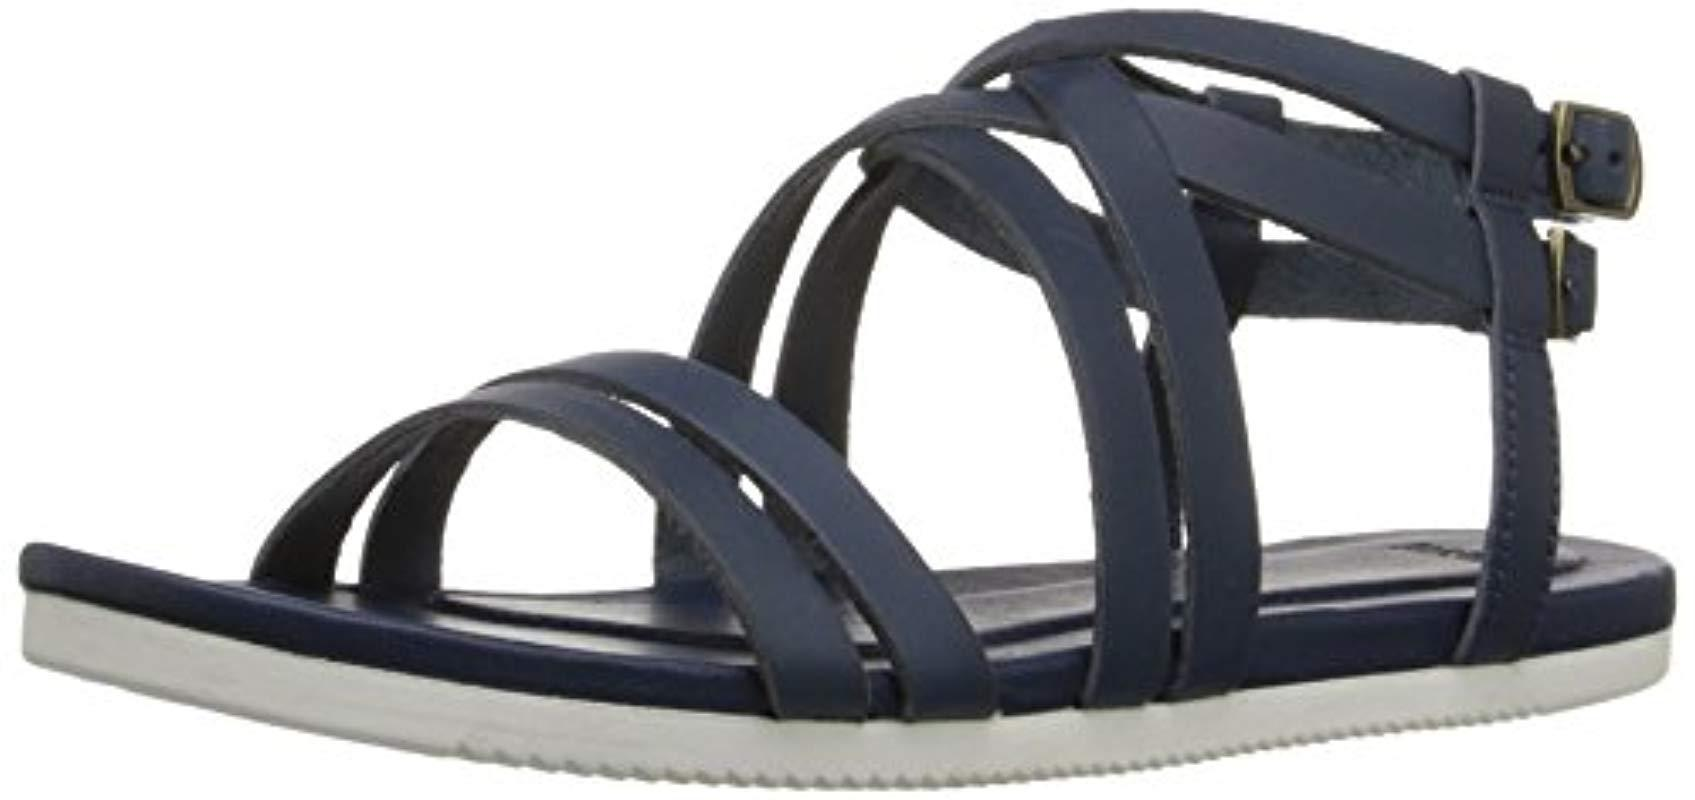 697ad08dbe7f Teva Avalina Crossover Leather Sandal in Blue - Lyst